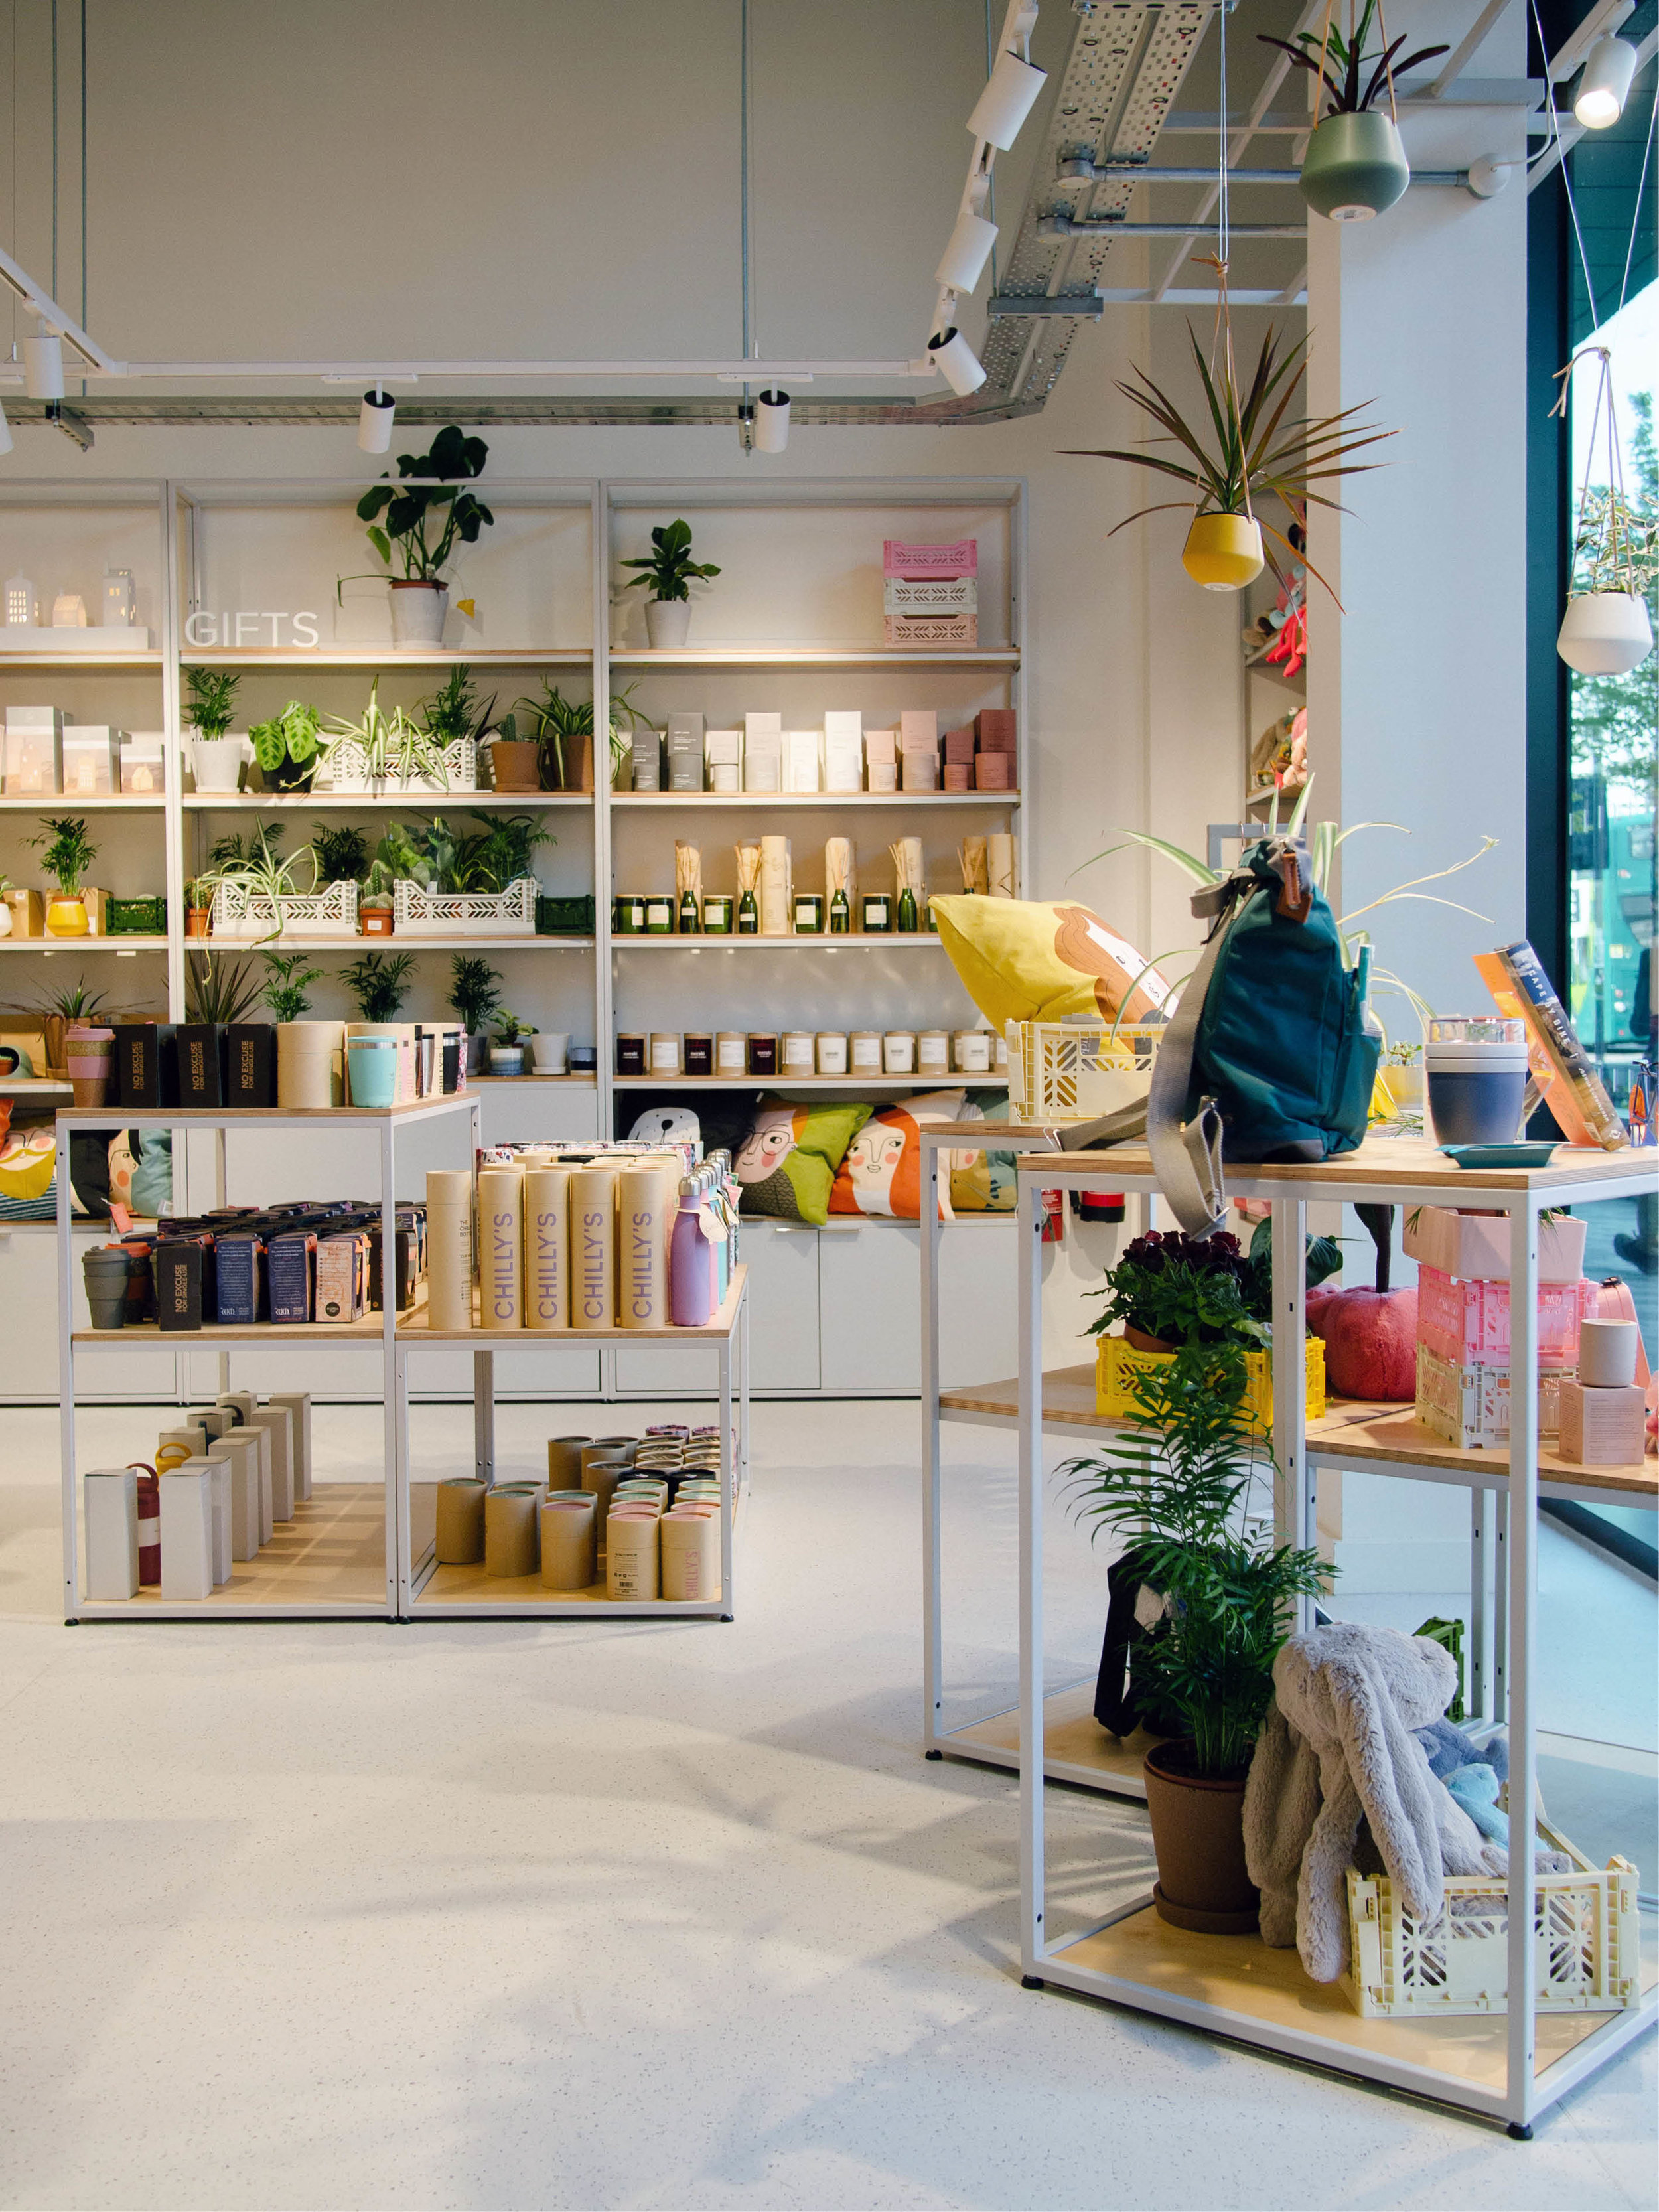 retail design utility manchester store design graphics agency fixture interior sustainable